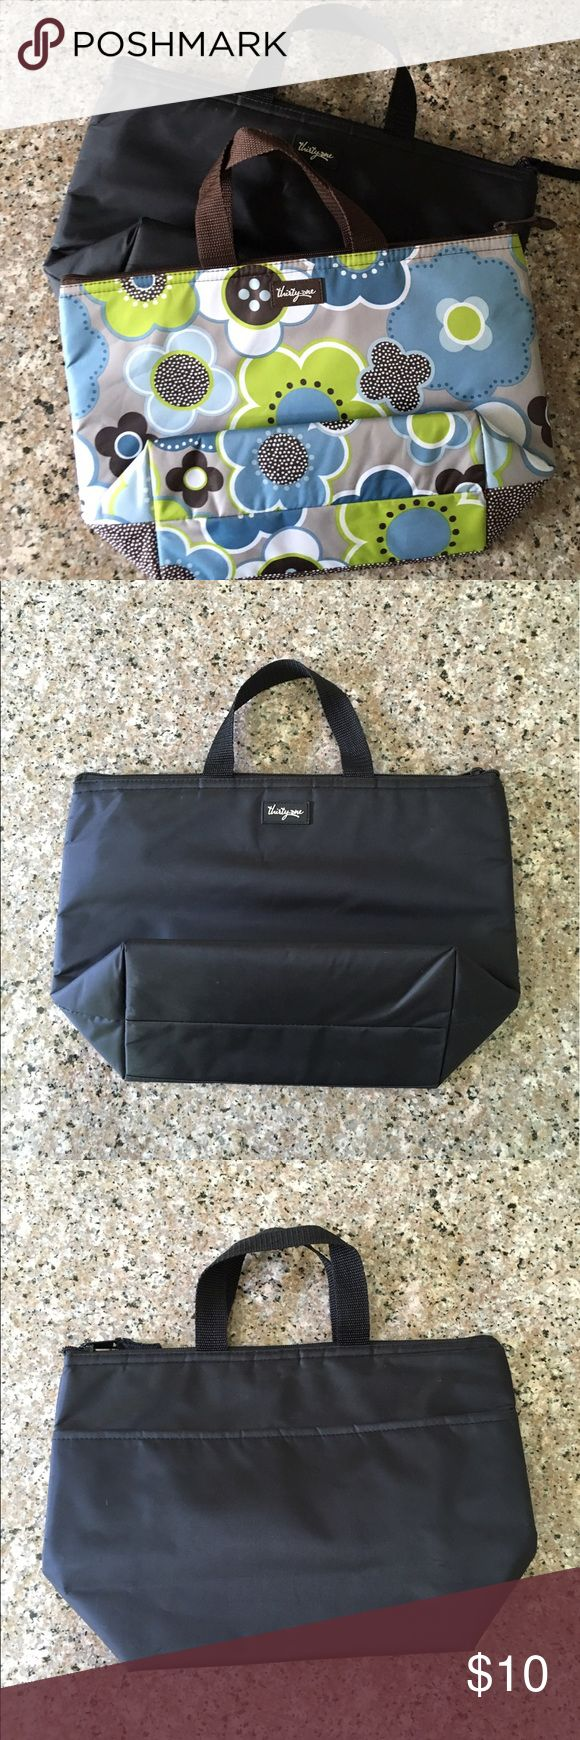 """Thirty-One Lunch Bag Set Thermal Lunch Bags. Zip-top closure. There is normal wear and tear as both of these bags have been used. In the interior of the floral dot thermal, there is a piece that is ripping. Item is New or Used: Used Size: 9"""" L x 4.5"""" W x 9.5"""" H Thirty-One Bags"""